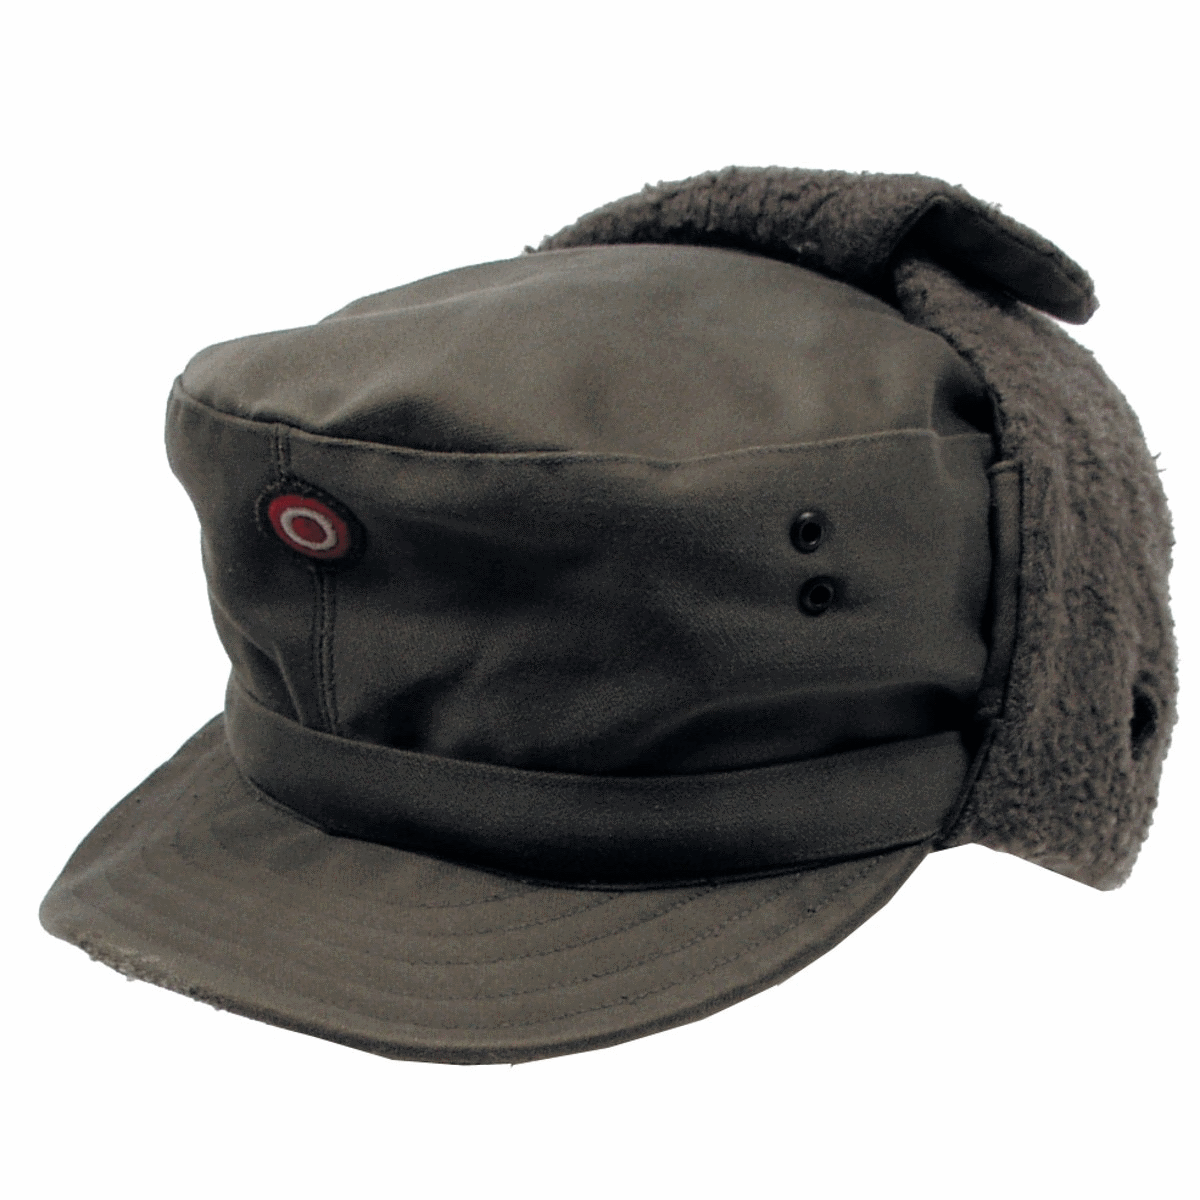 Austrian army surplus winter cold weather cap with neck cover